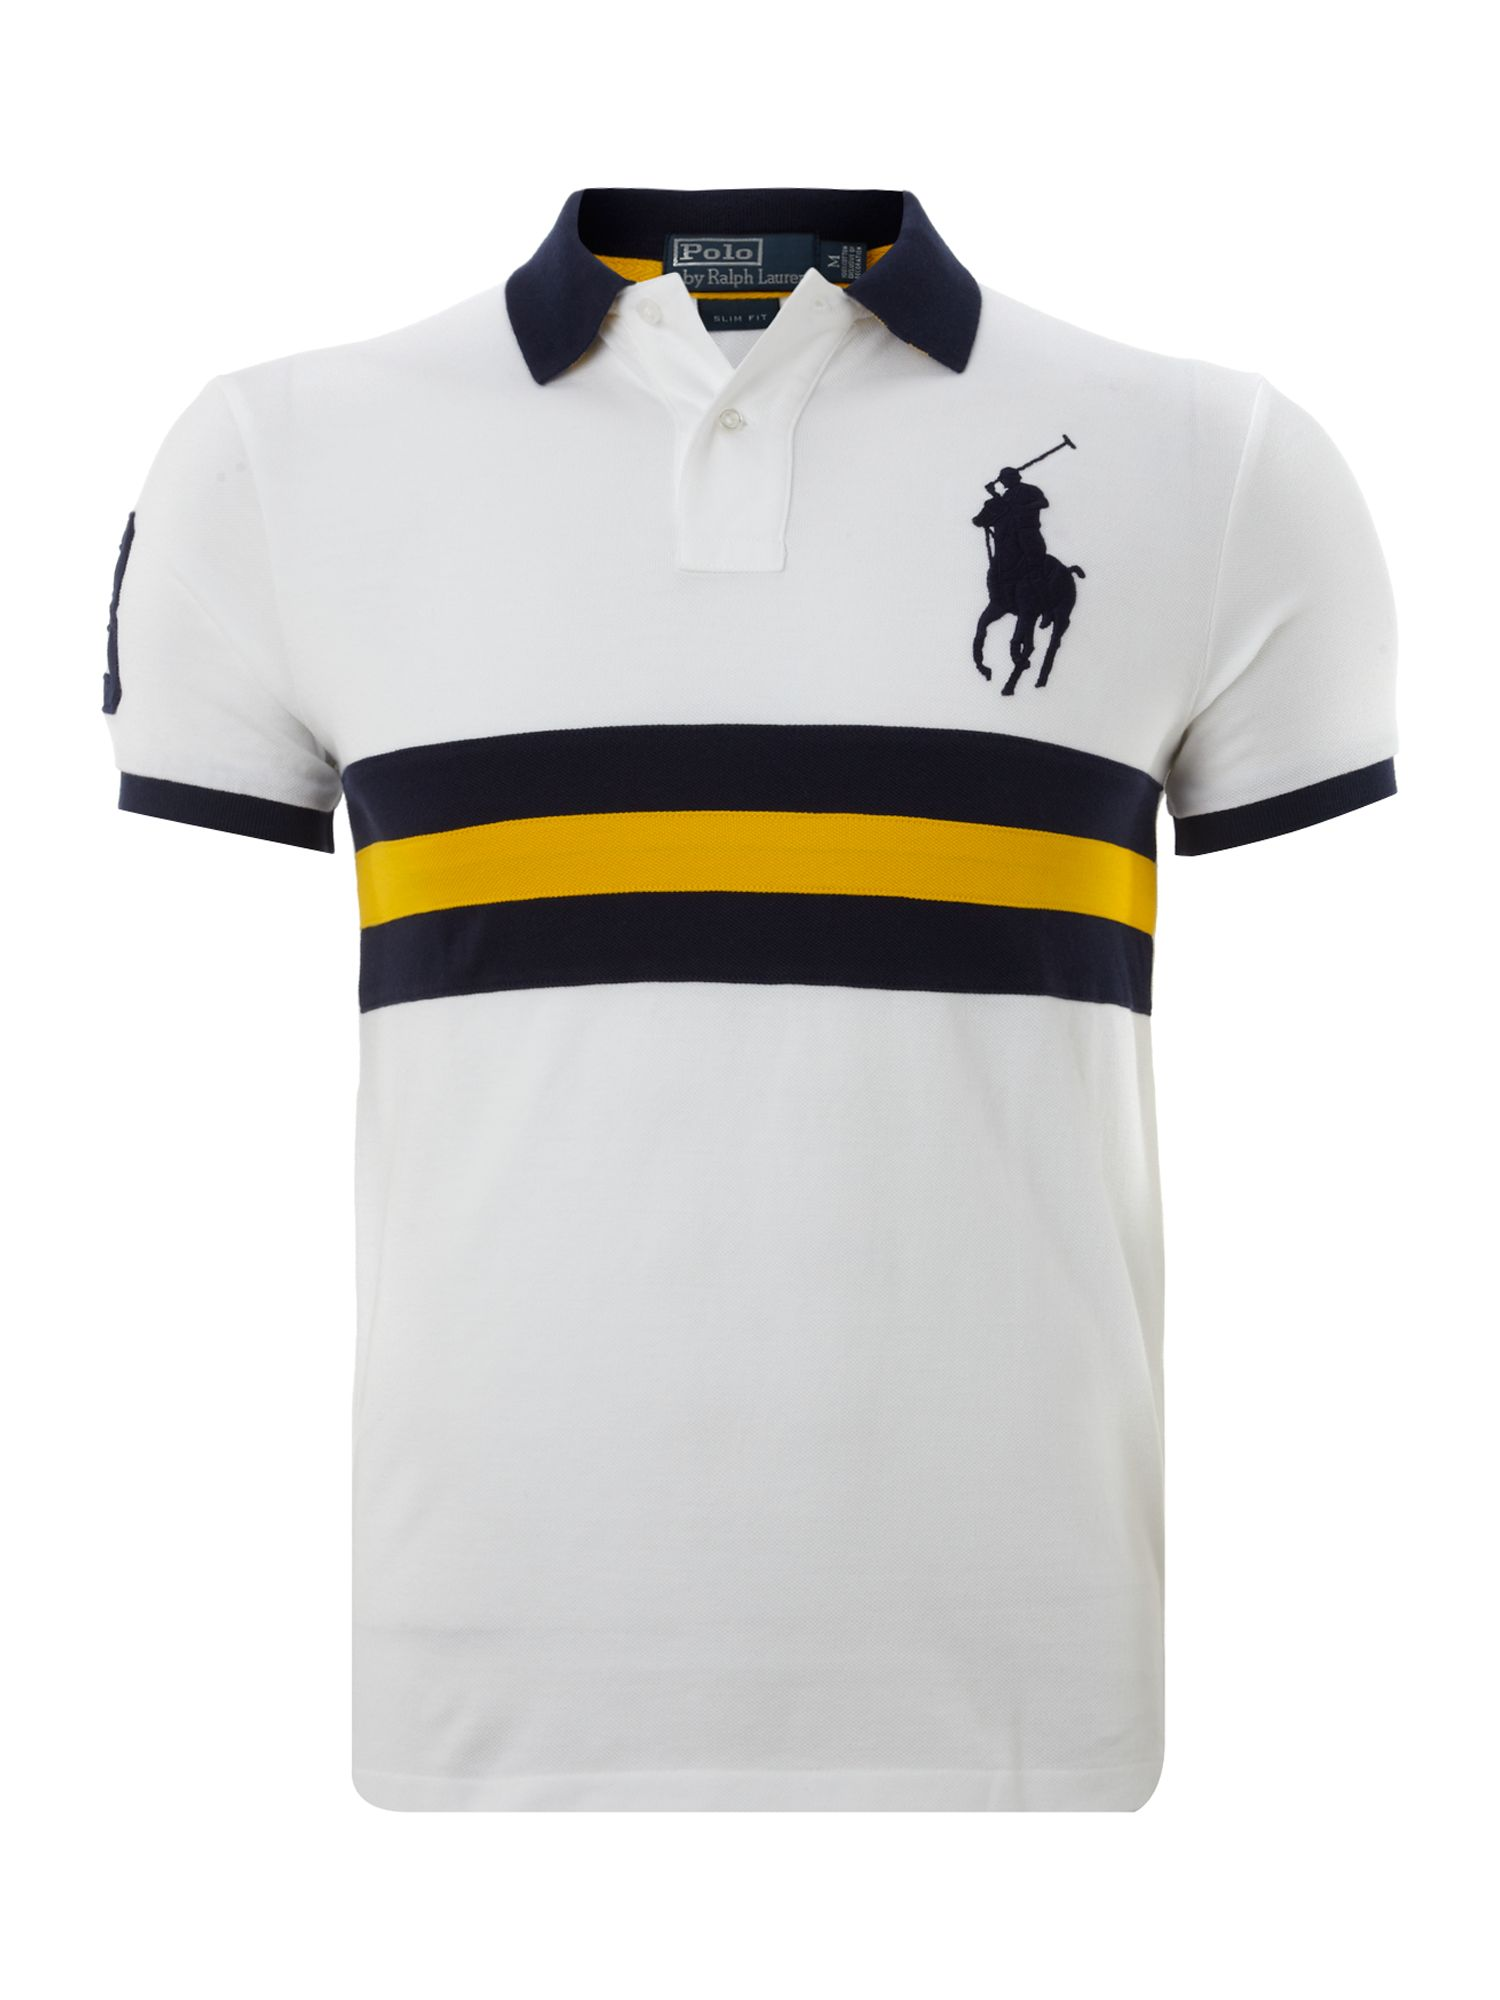 Slim fitted big pony player polo shirt